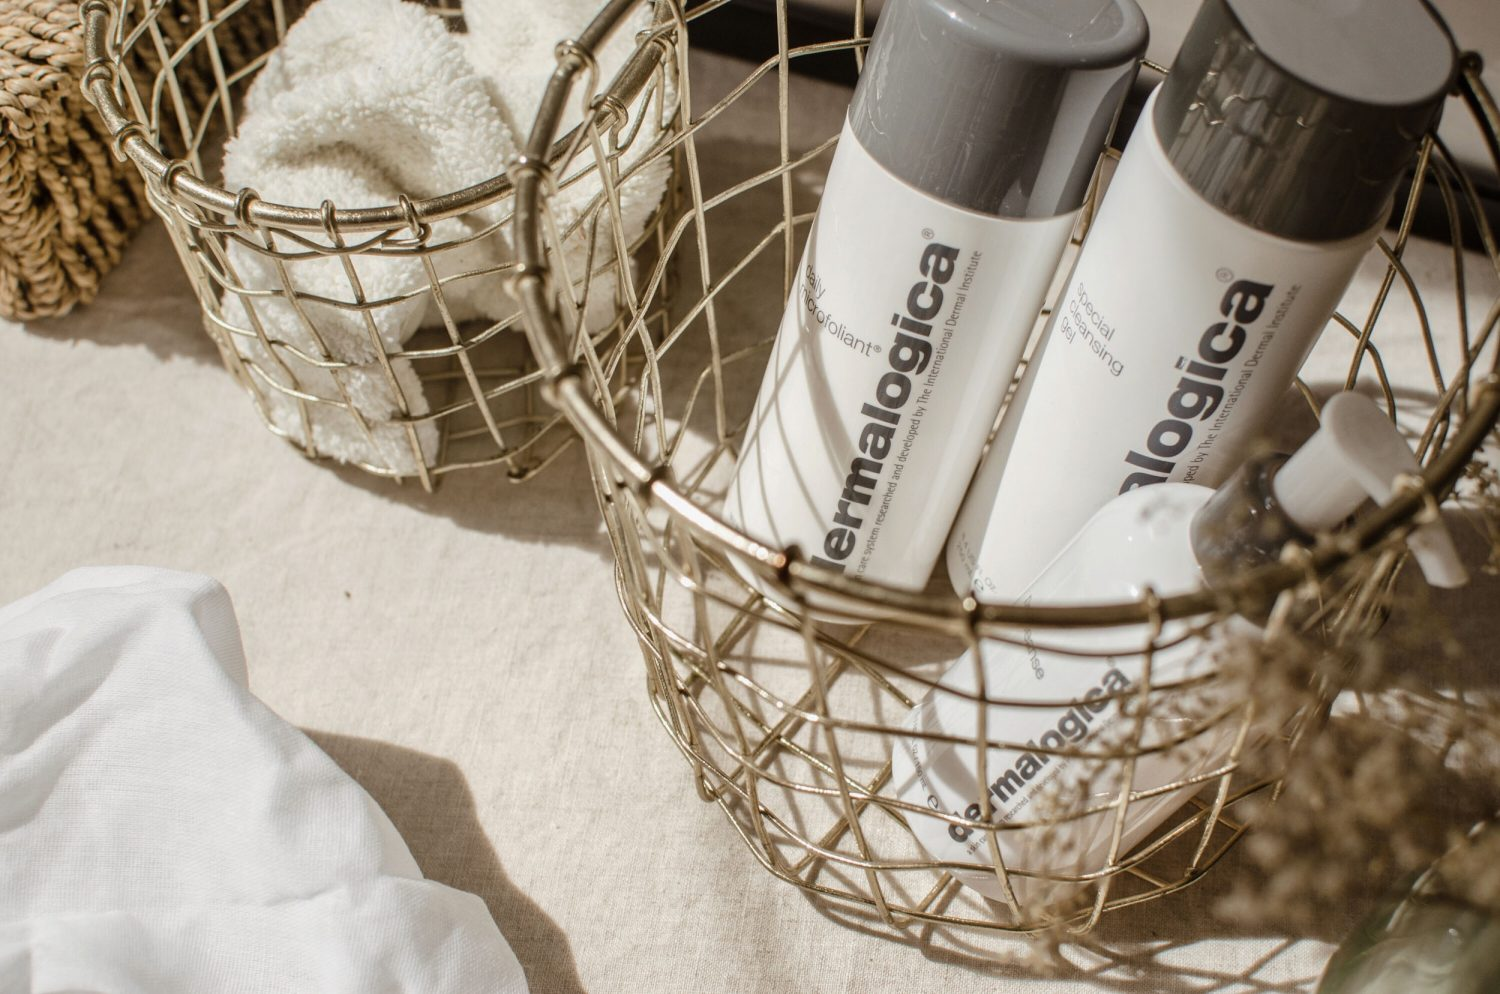 Dermalogica Review - New skincare staples? - Chopstick Panorama